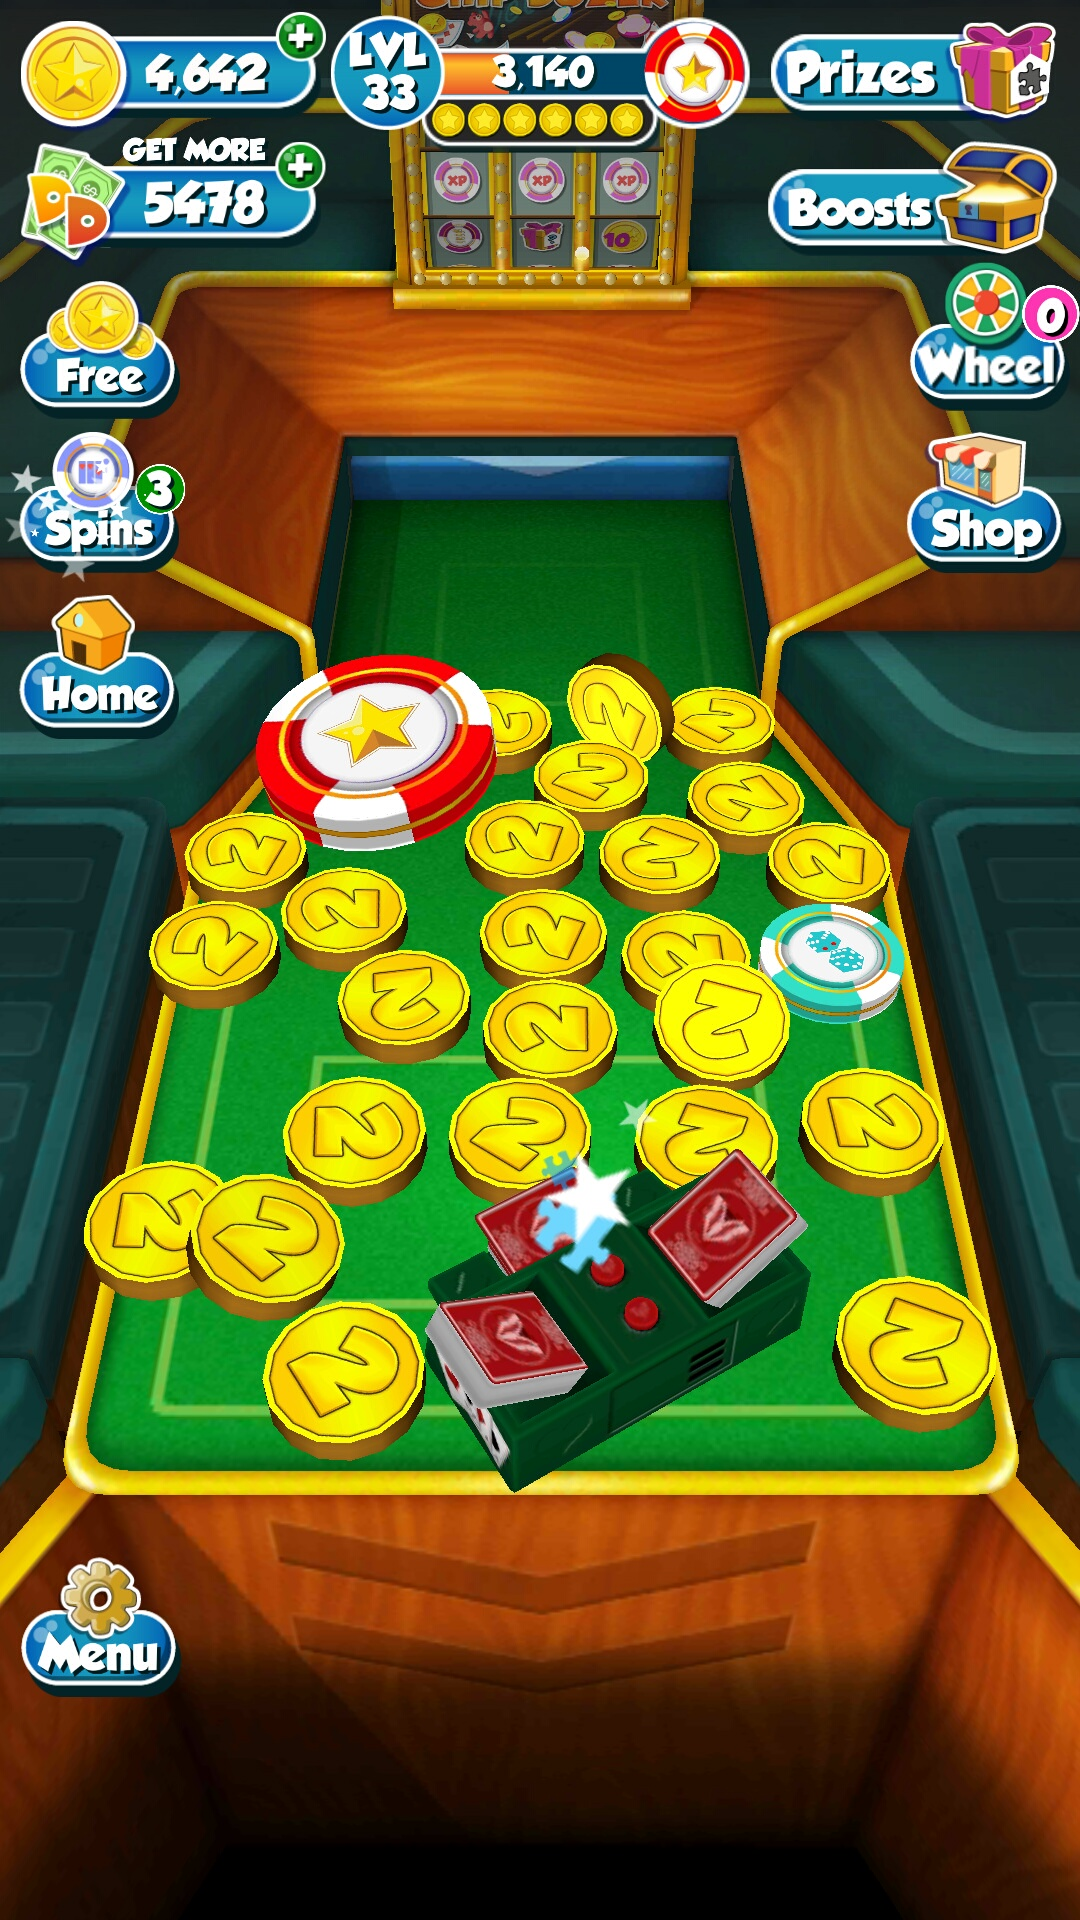 Flyme Resources Team] [Game Review] Coin Dozer-Flyme Official Forum